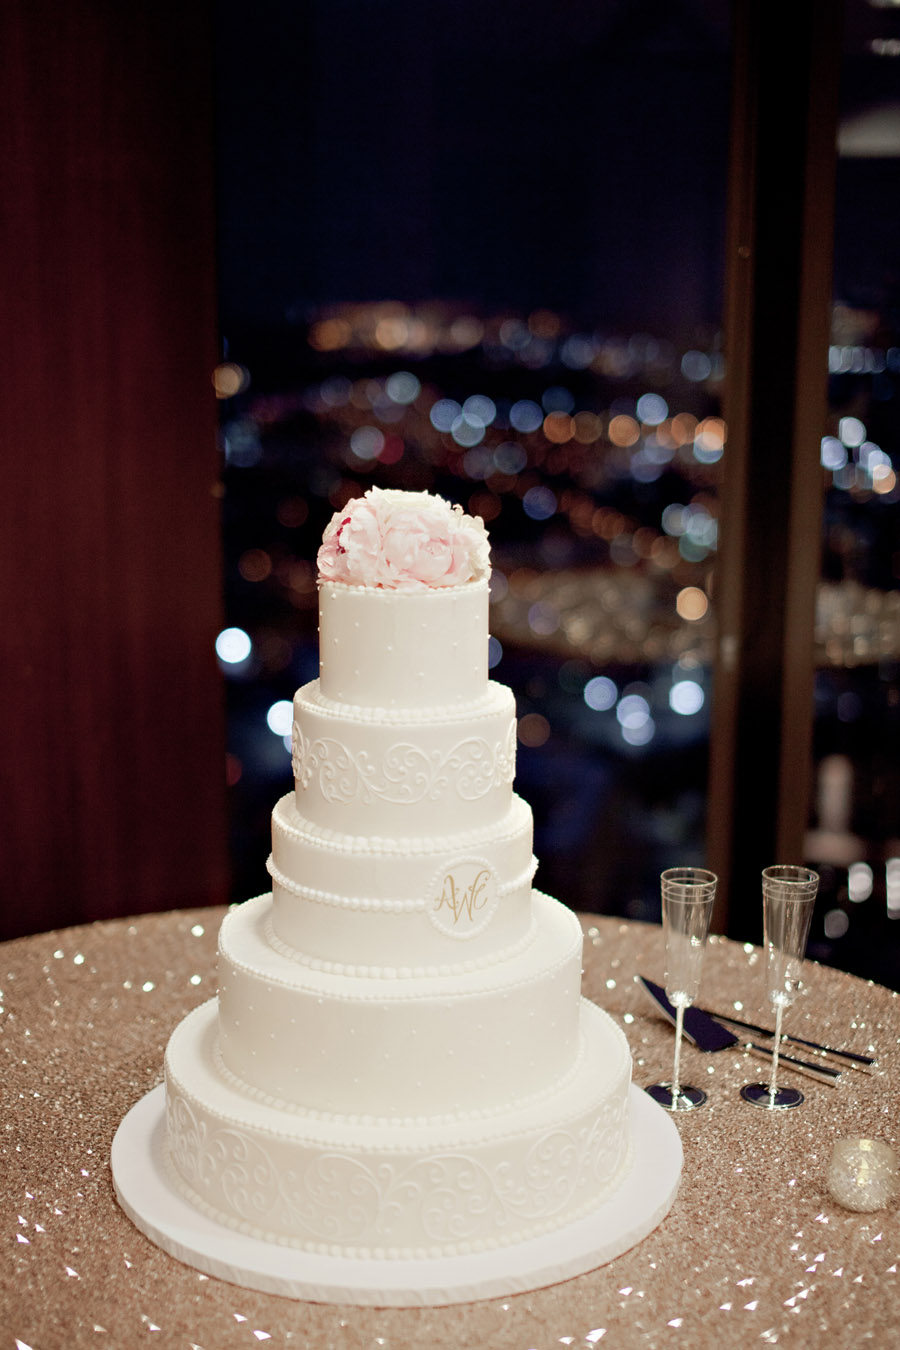 072-Thanksgiving-Tower-Club-Dallas-Wedding-by-Ivy-Weddings-swank-Soiree-Dallas-wedding- planner.jpg